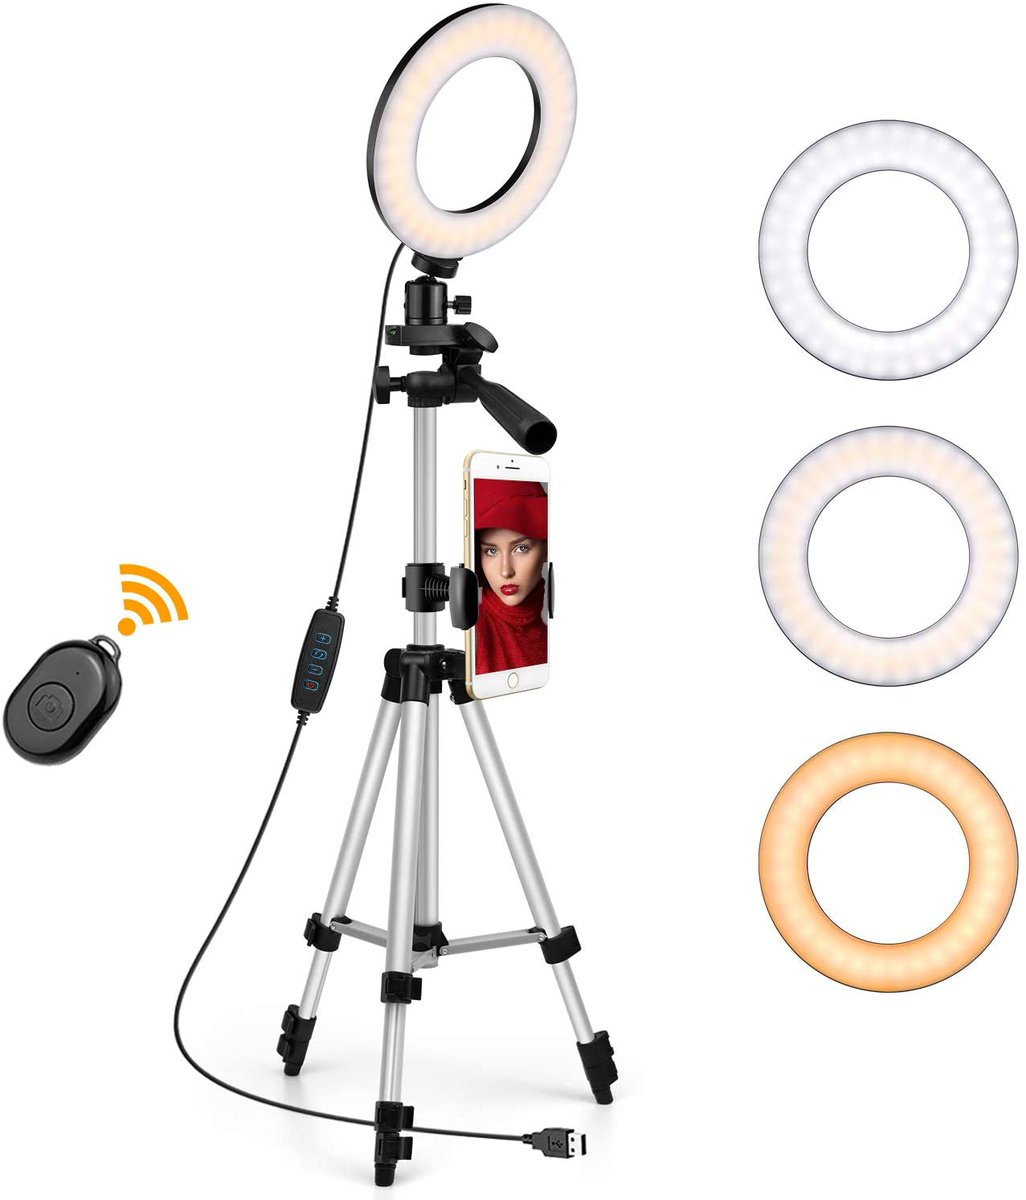 "Going Fast - 6"" Ring Light with Tripod Stand Cell Phone Holder  Sale Price $21.99     #makeupartist #deals  #photography #salons #photoshoot #sales #MUA #NaughtiasDeals #barberlife #Discounts #Amazon"